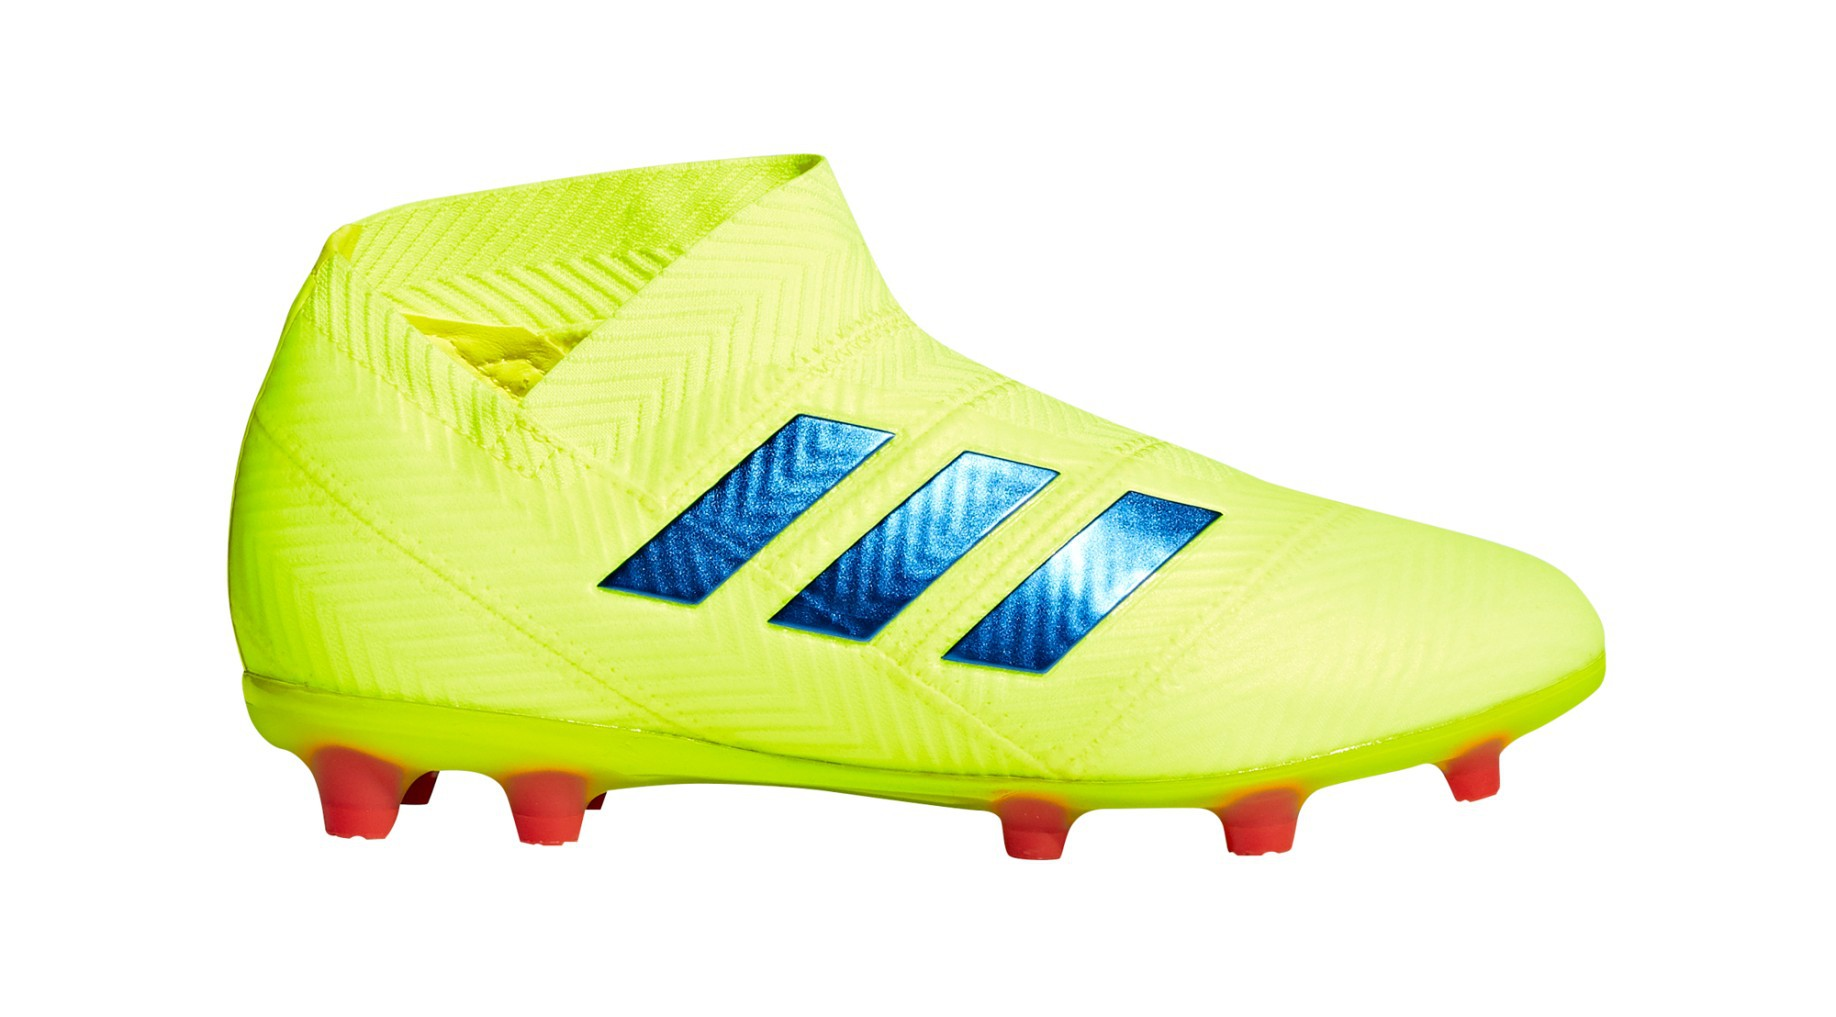 hot sales 7fce4 46ba2 Football boots Adidas Nemeziz 18+ FG Exhibit Pack colore Yellow Blue -  Adidas - SportIT.com